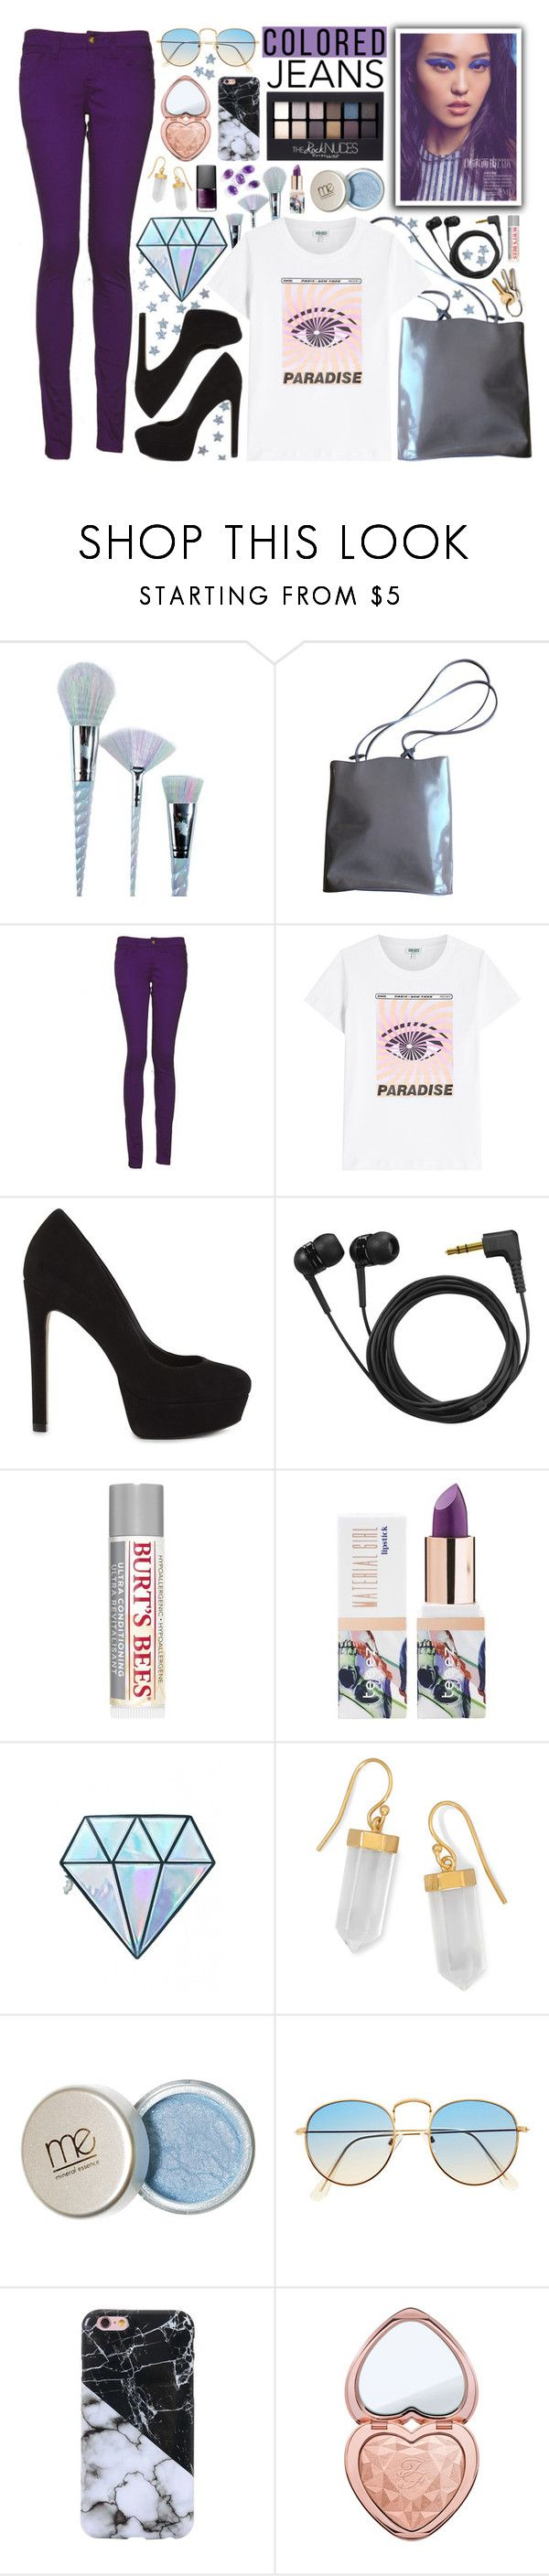 """[303]"" by yuuurei ❤ liked on Polyvore featuring Unicorn Lashes, Furla, Monkee Genes, Kenzo, ALDO, Sennheiser, Burt's Bees, Maybelline, Teeez and BillyTheTree"